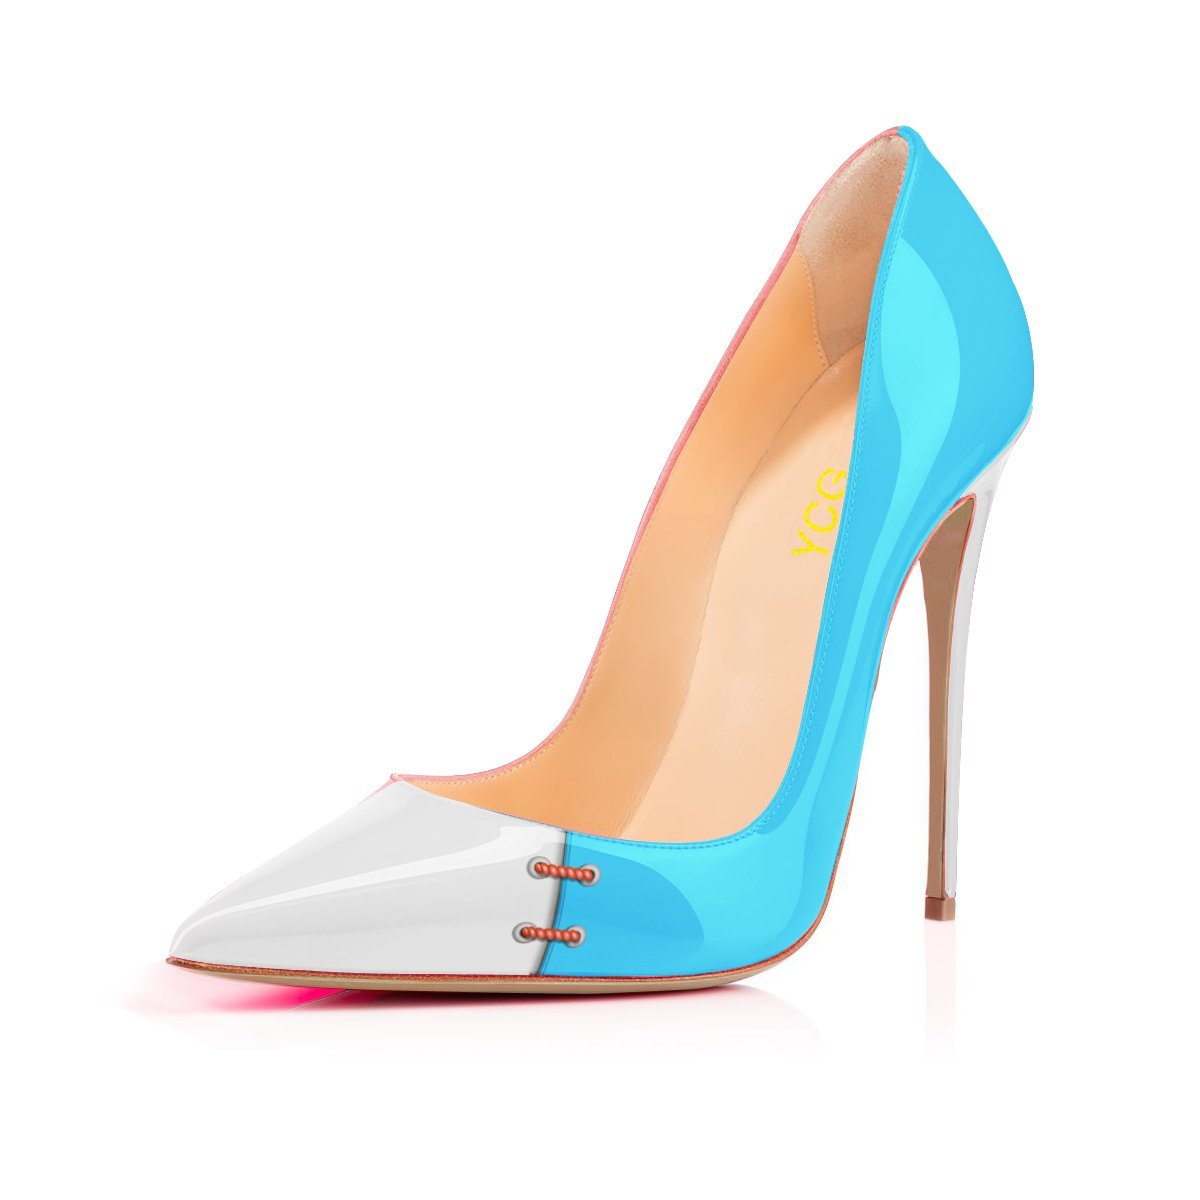 YCG Women's High Heels Pumps White&Blue&Red Color Patch Printing Slip on Shoes US 9.5